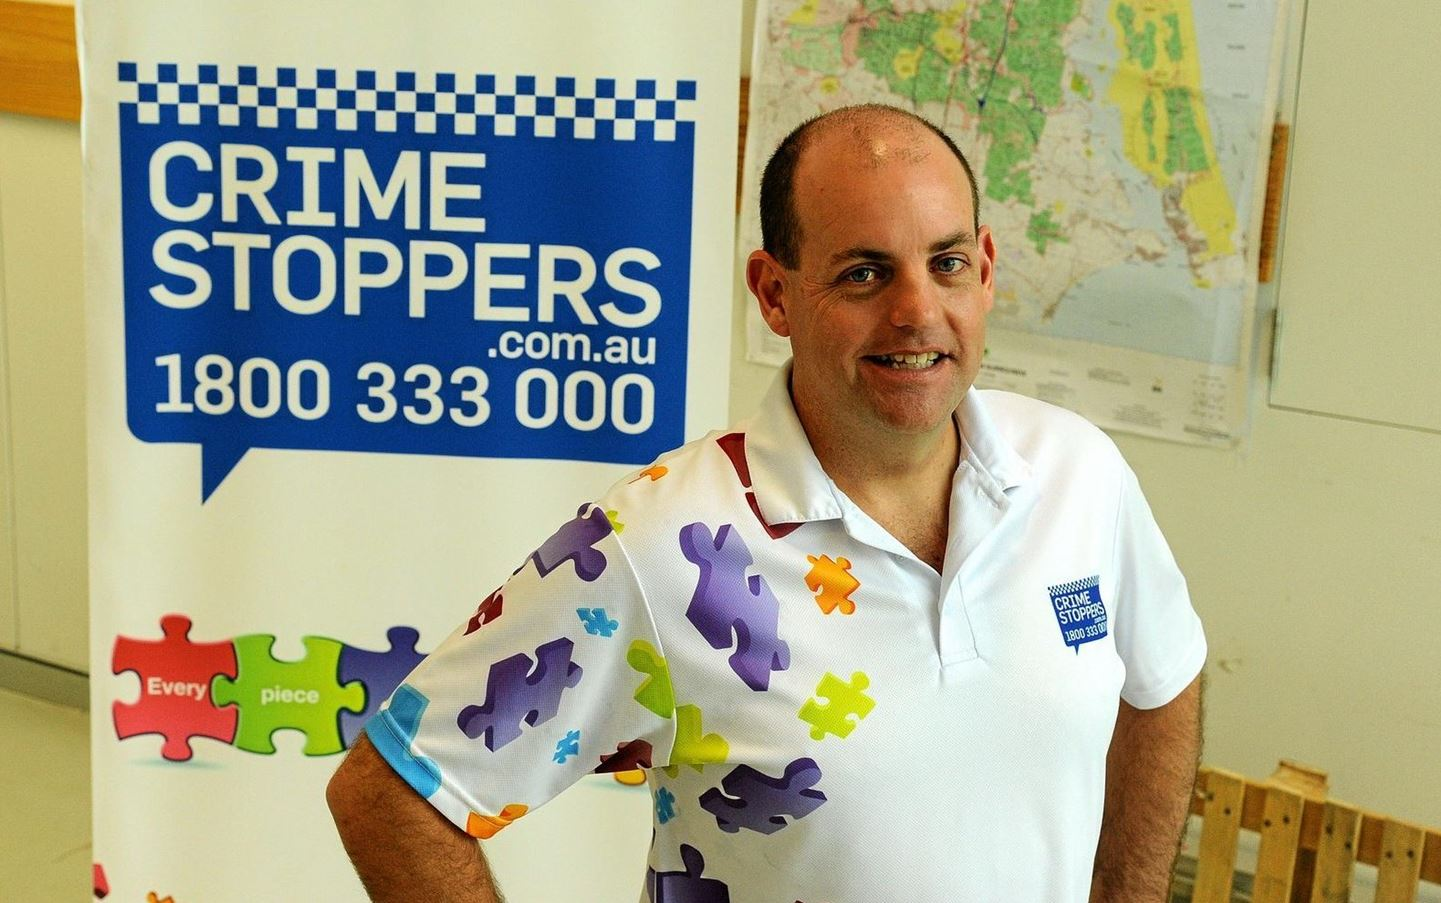 Crime Stoppers Queensland CEO Trevor O'Hara is happy with the 2016 arrest and charge results.